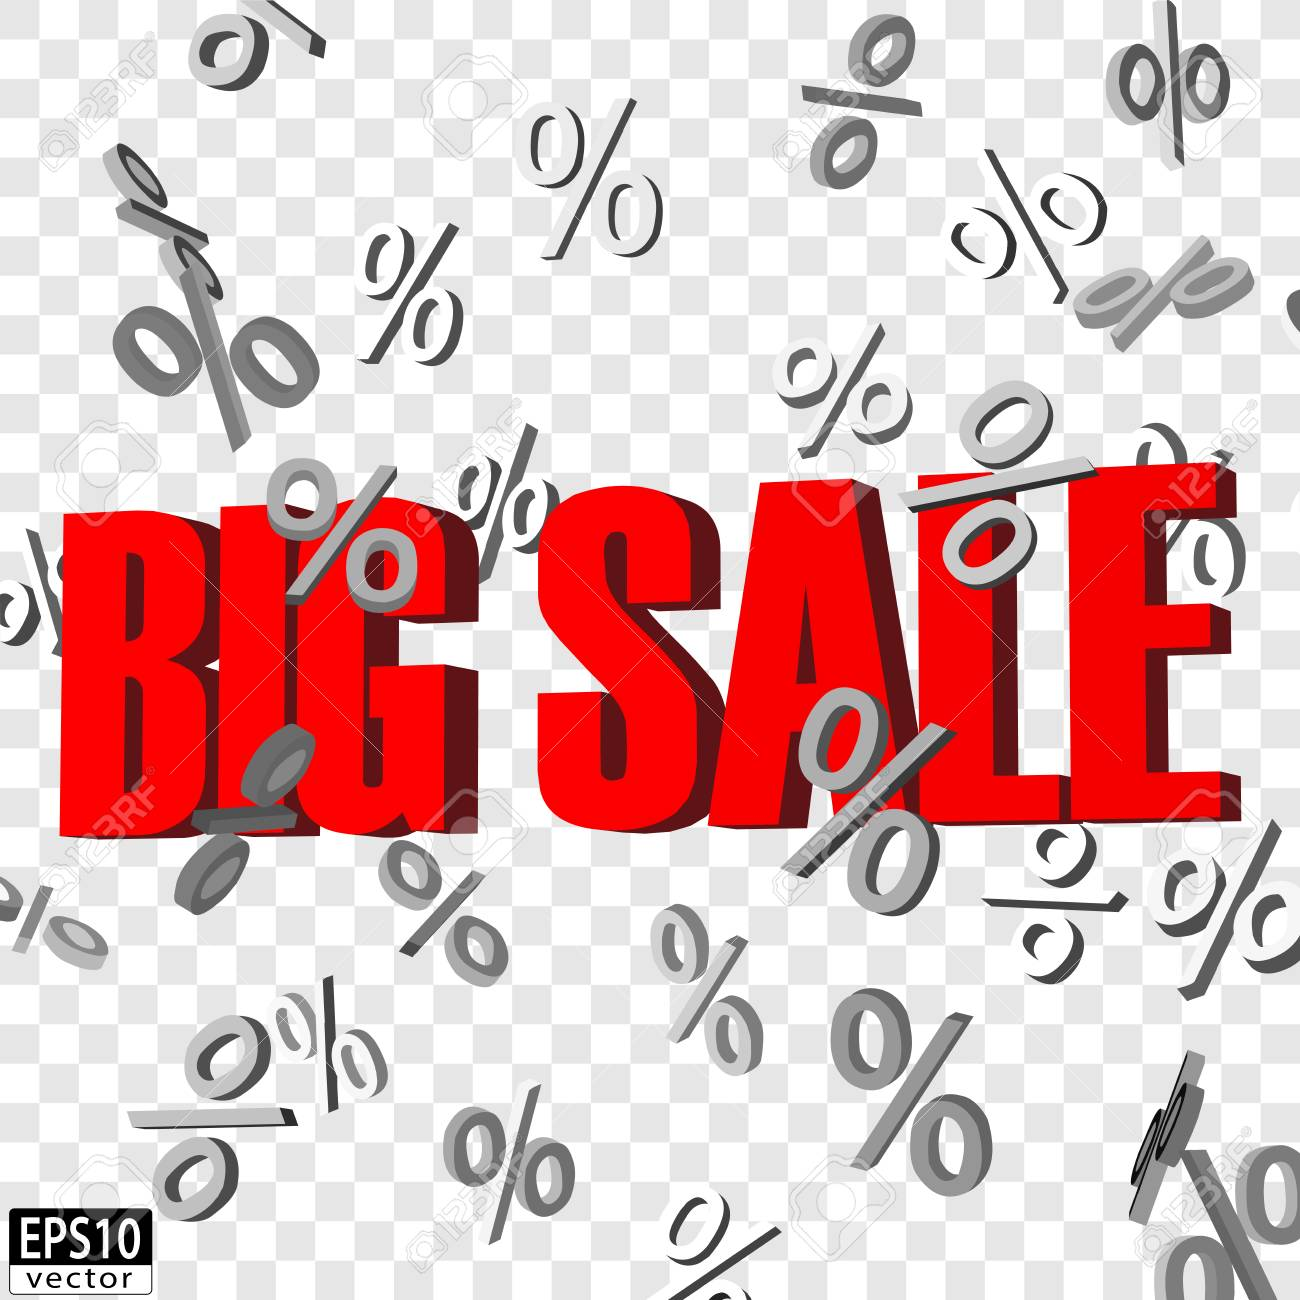 Isolated Big sale word with falling percent signs EPS10 Vector - 51756196